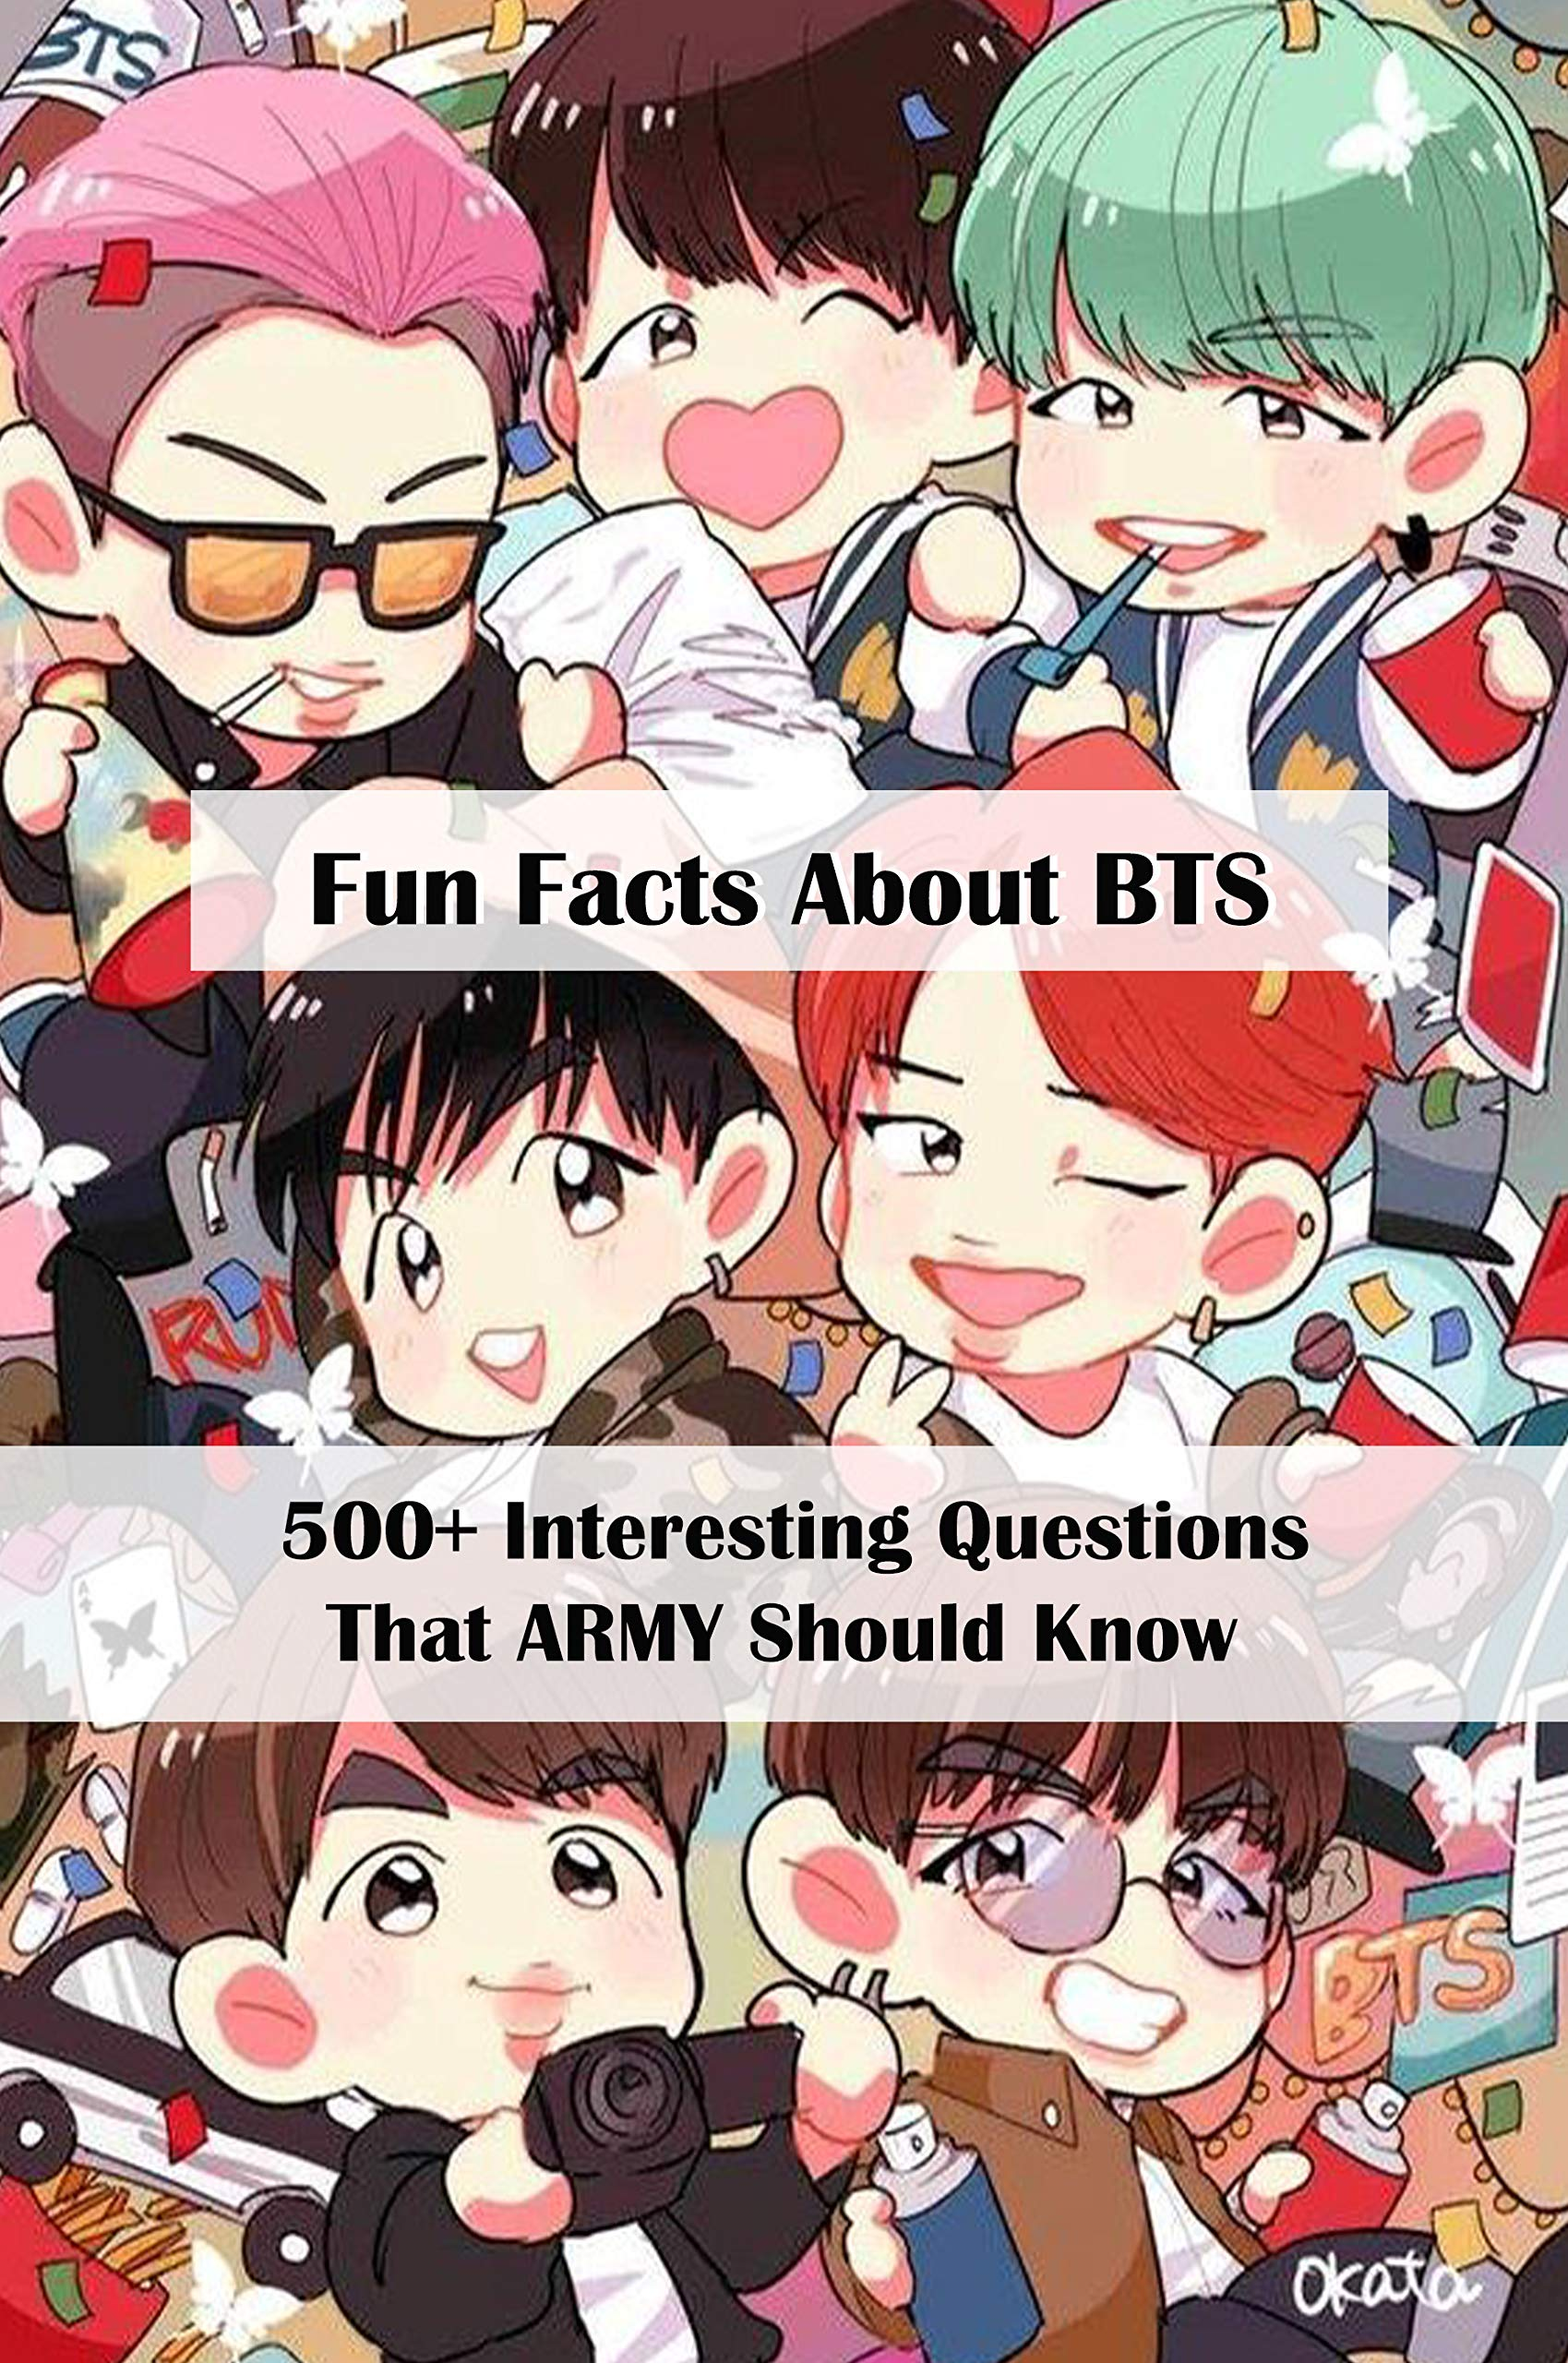 Fun Facts About BTS: 500+ Interesting Questions That ARMY Should Know: Bangtan Boys Trivia Quizzes And Games